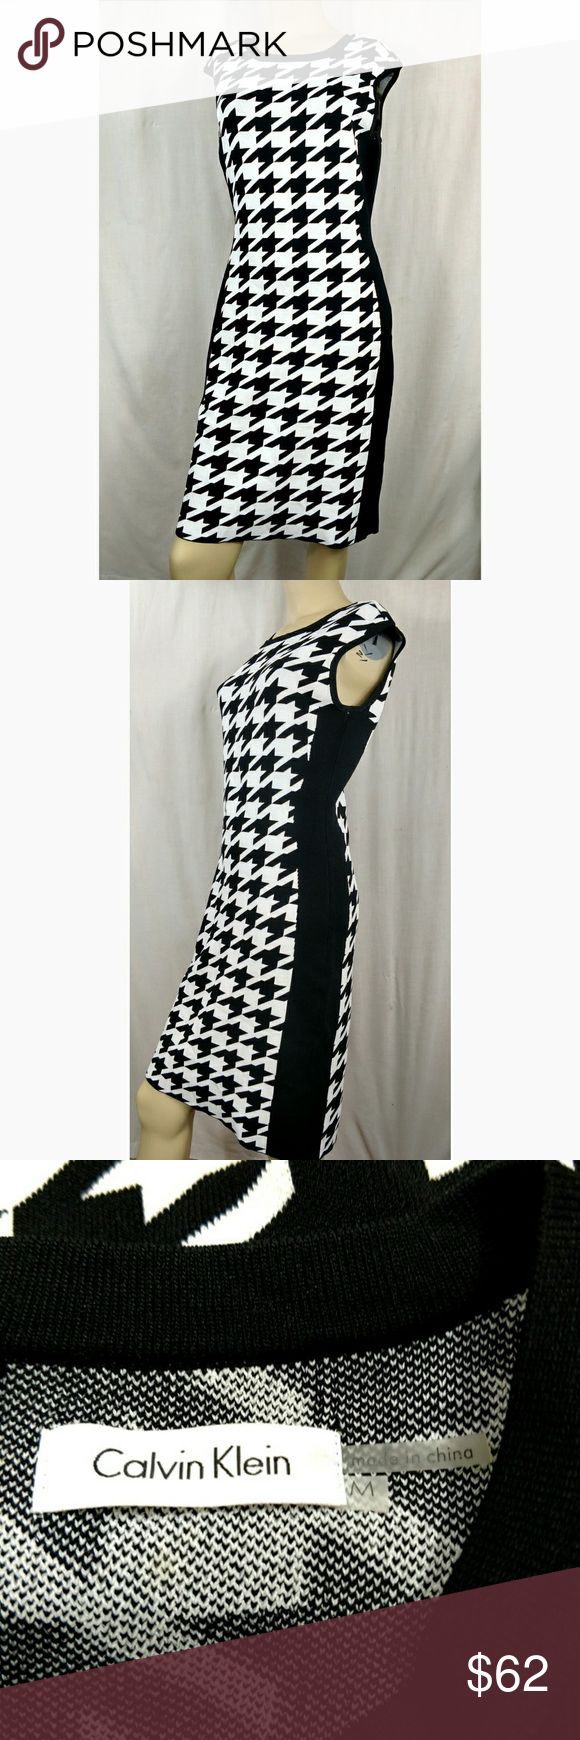 CALVIN KLEIN cocktail work pencil dress. MEDIUM Houndstooth pattern. New without tags.  (B) Calvin Klein Dresses